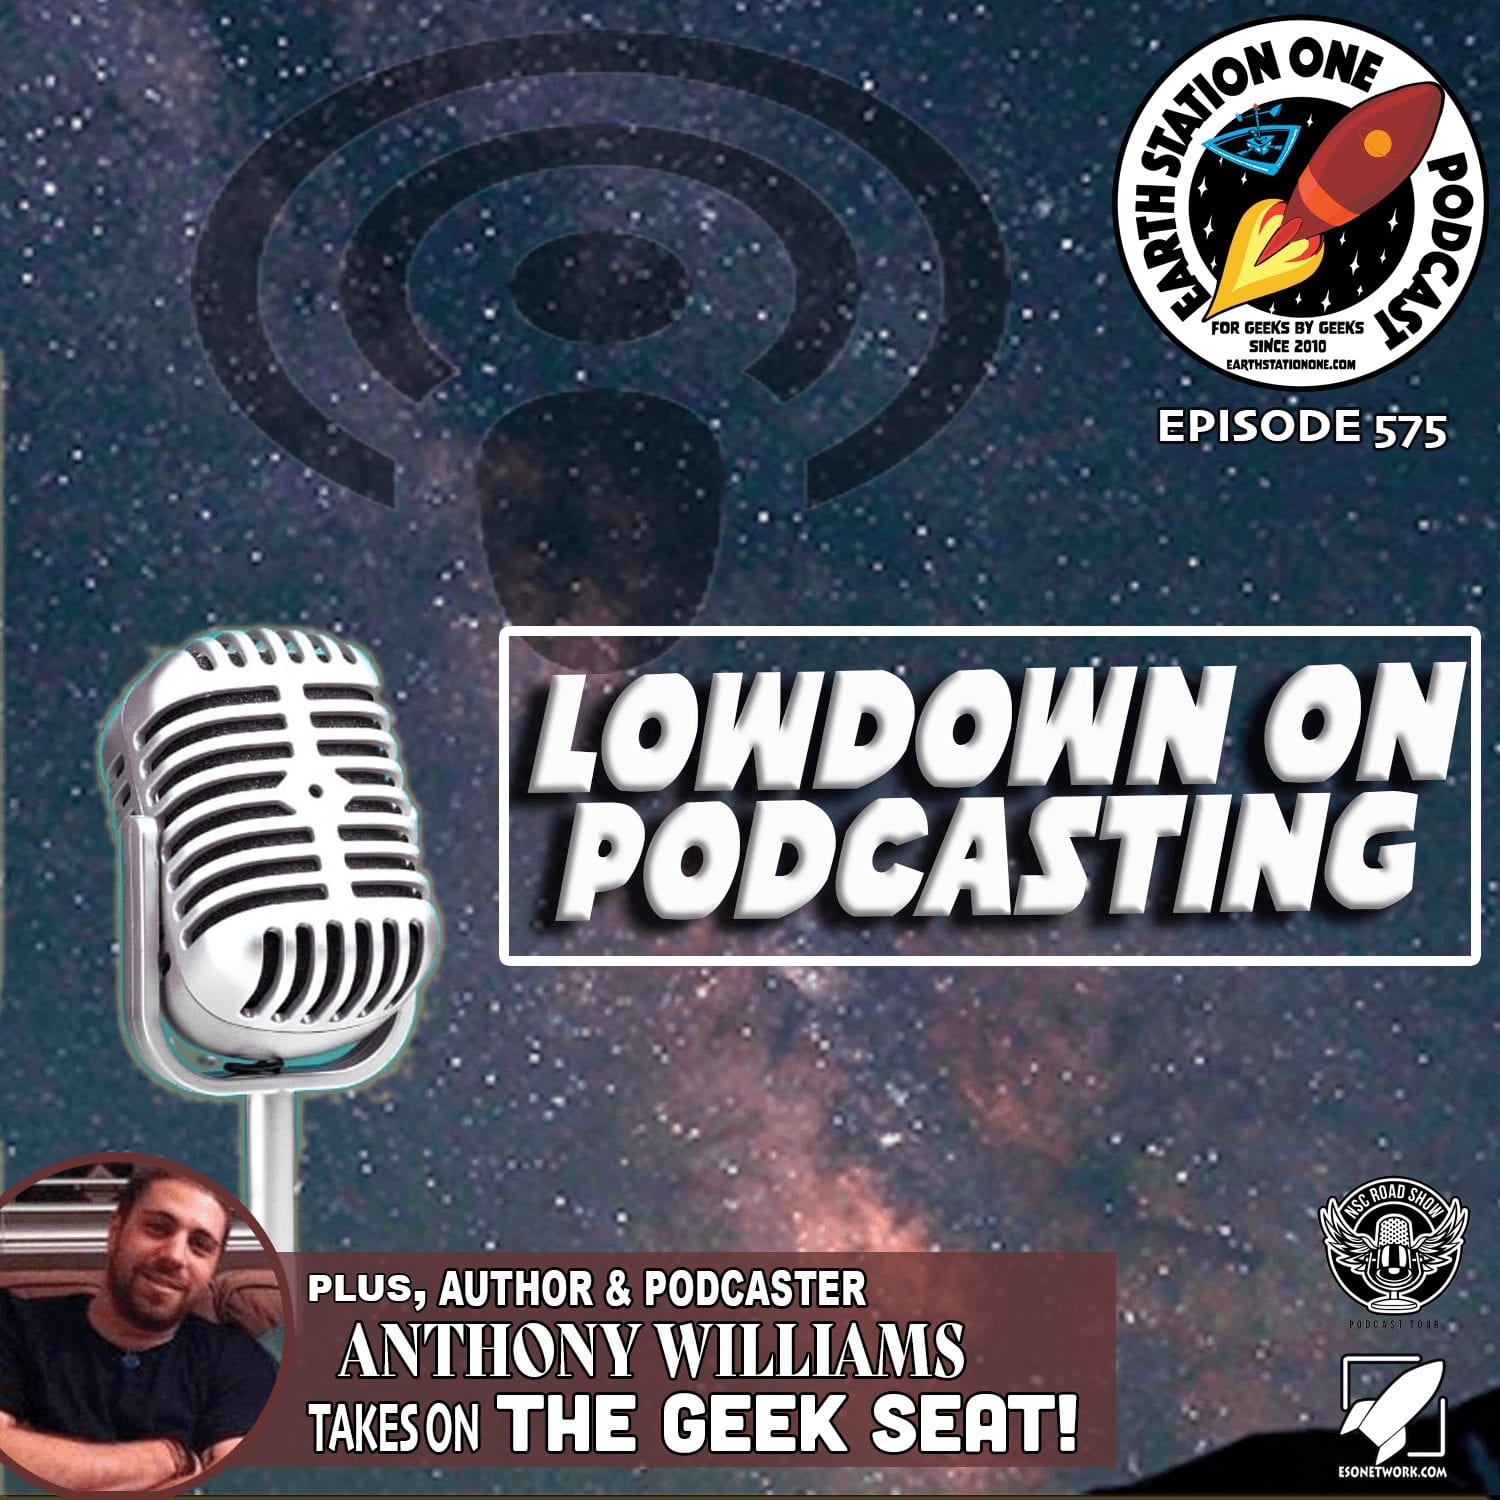 Earth Station One Ep 575 - Lowdown on Podcasting